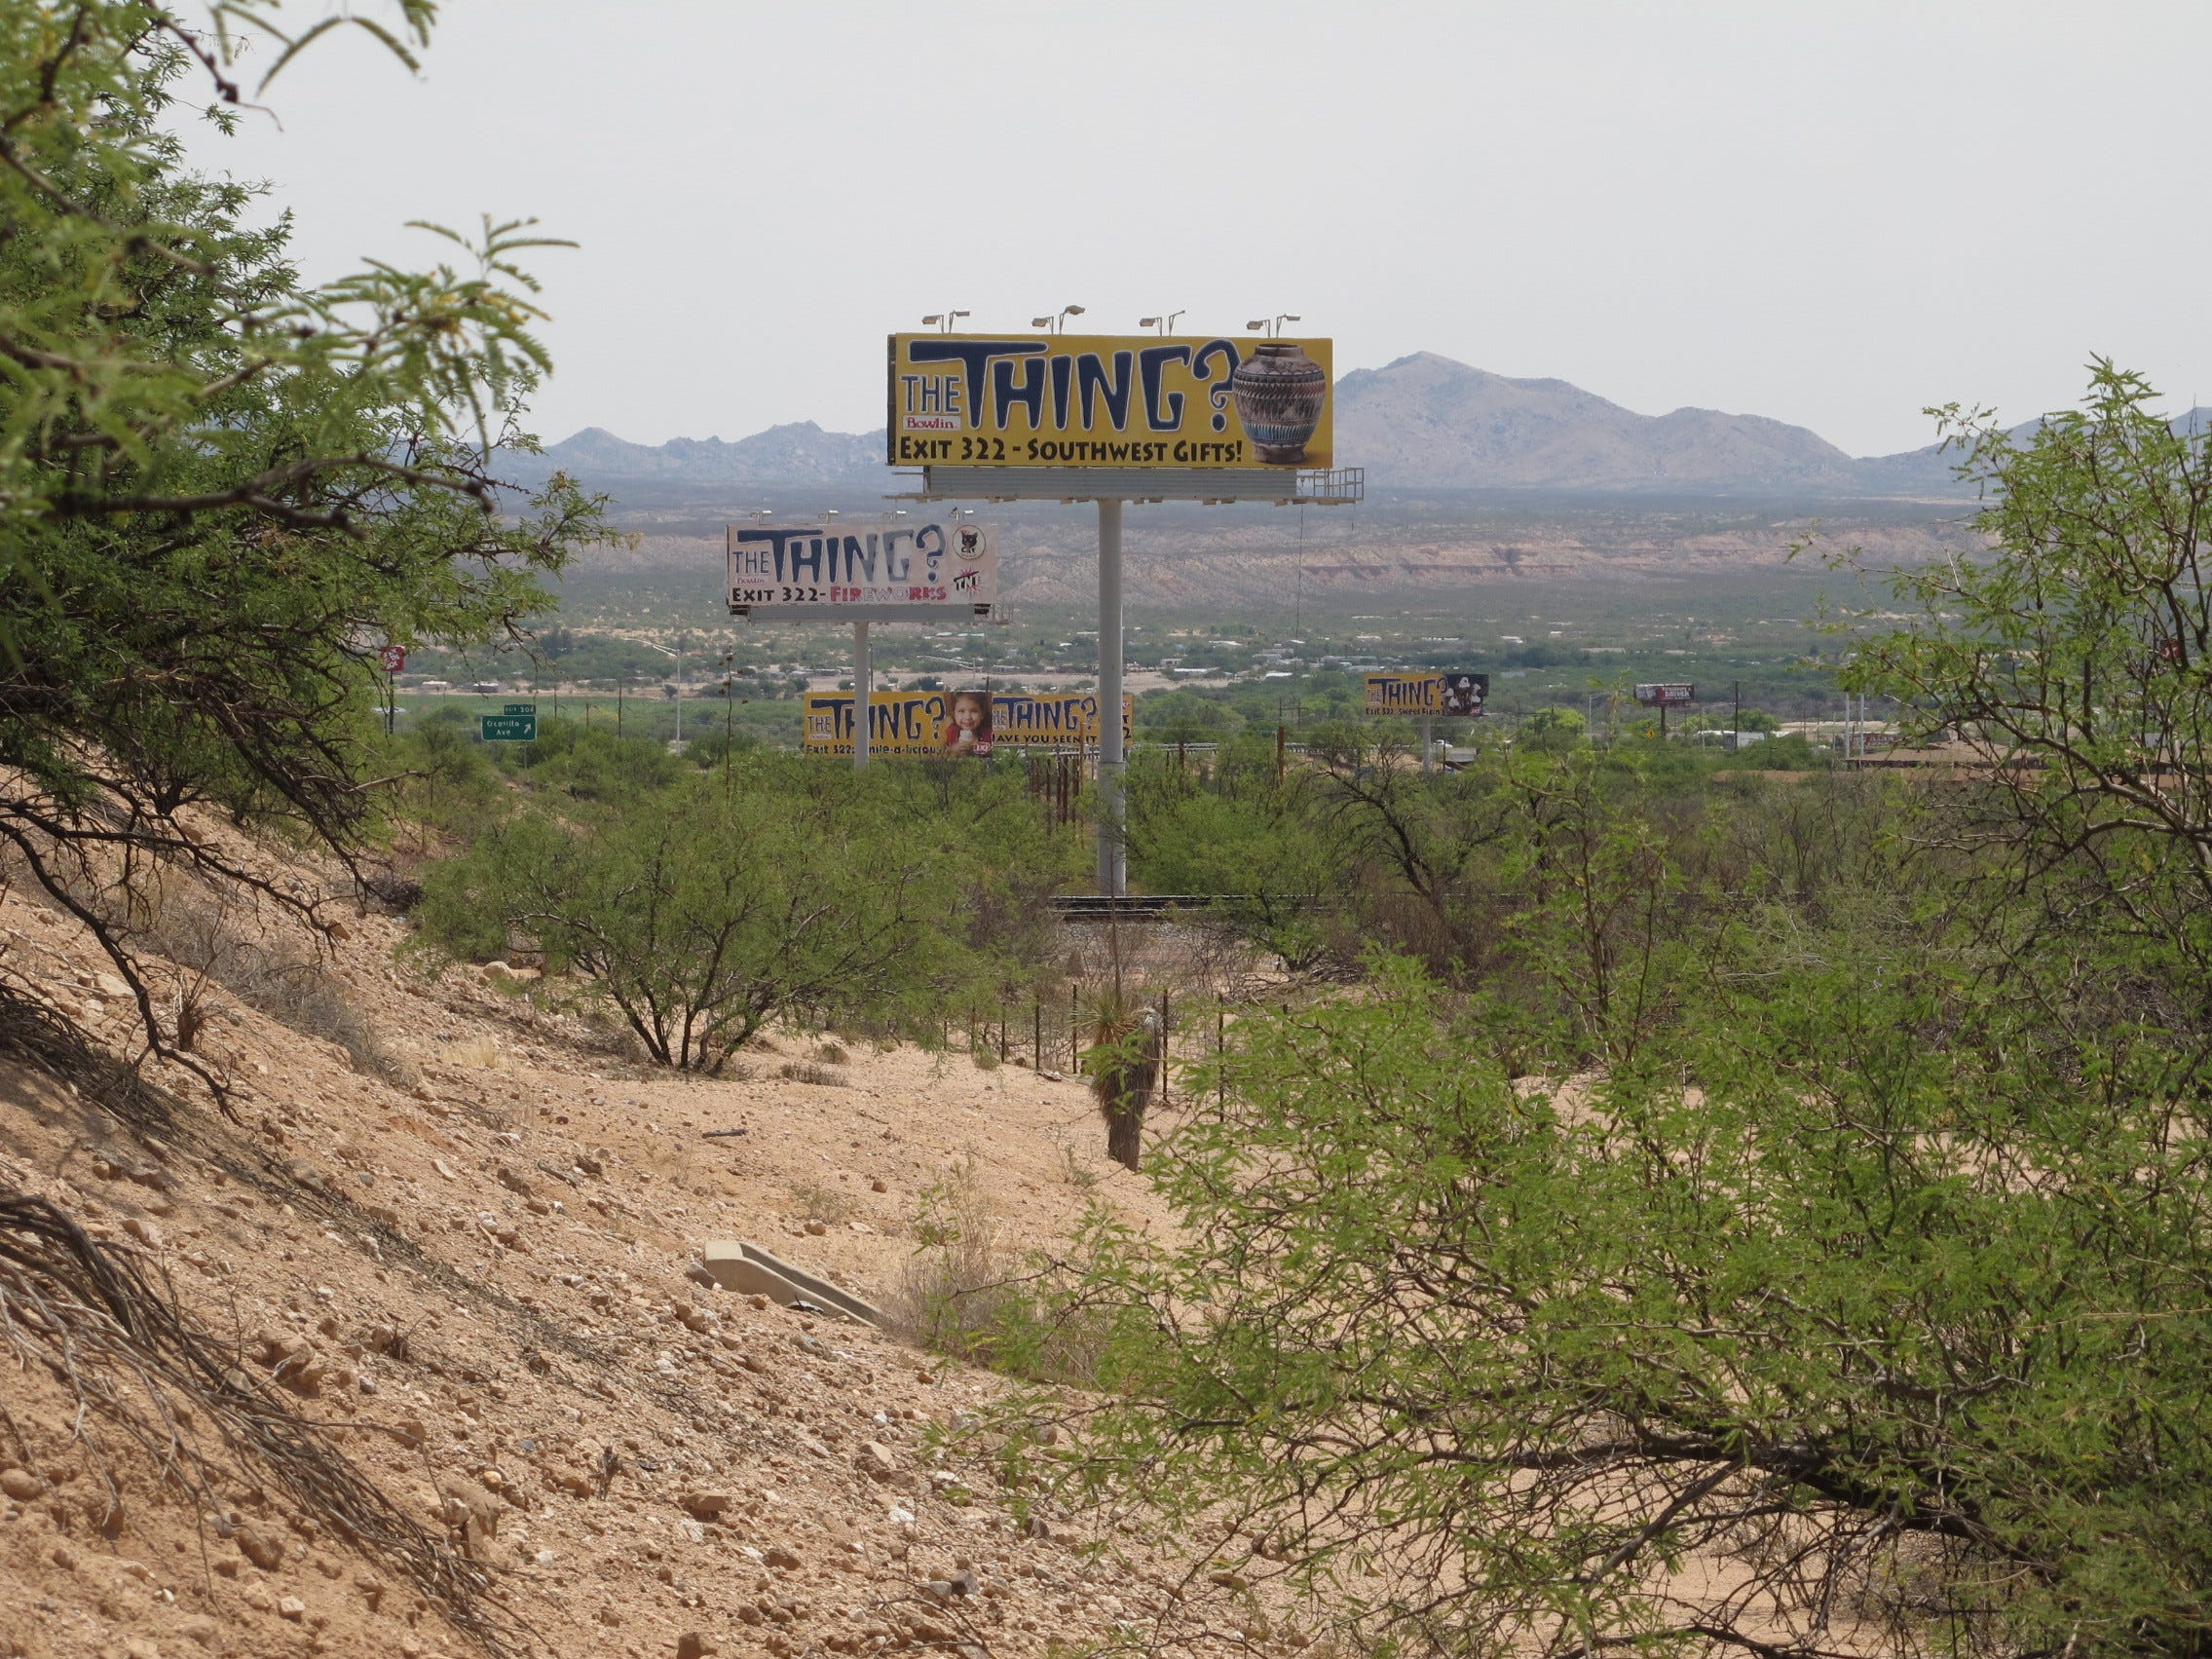 Billboards in Benson, along Interstate 10 East, pitch the Thing in Texas Canyon in the Dragoon Mountains.